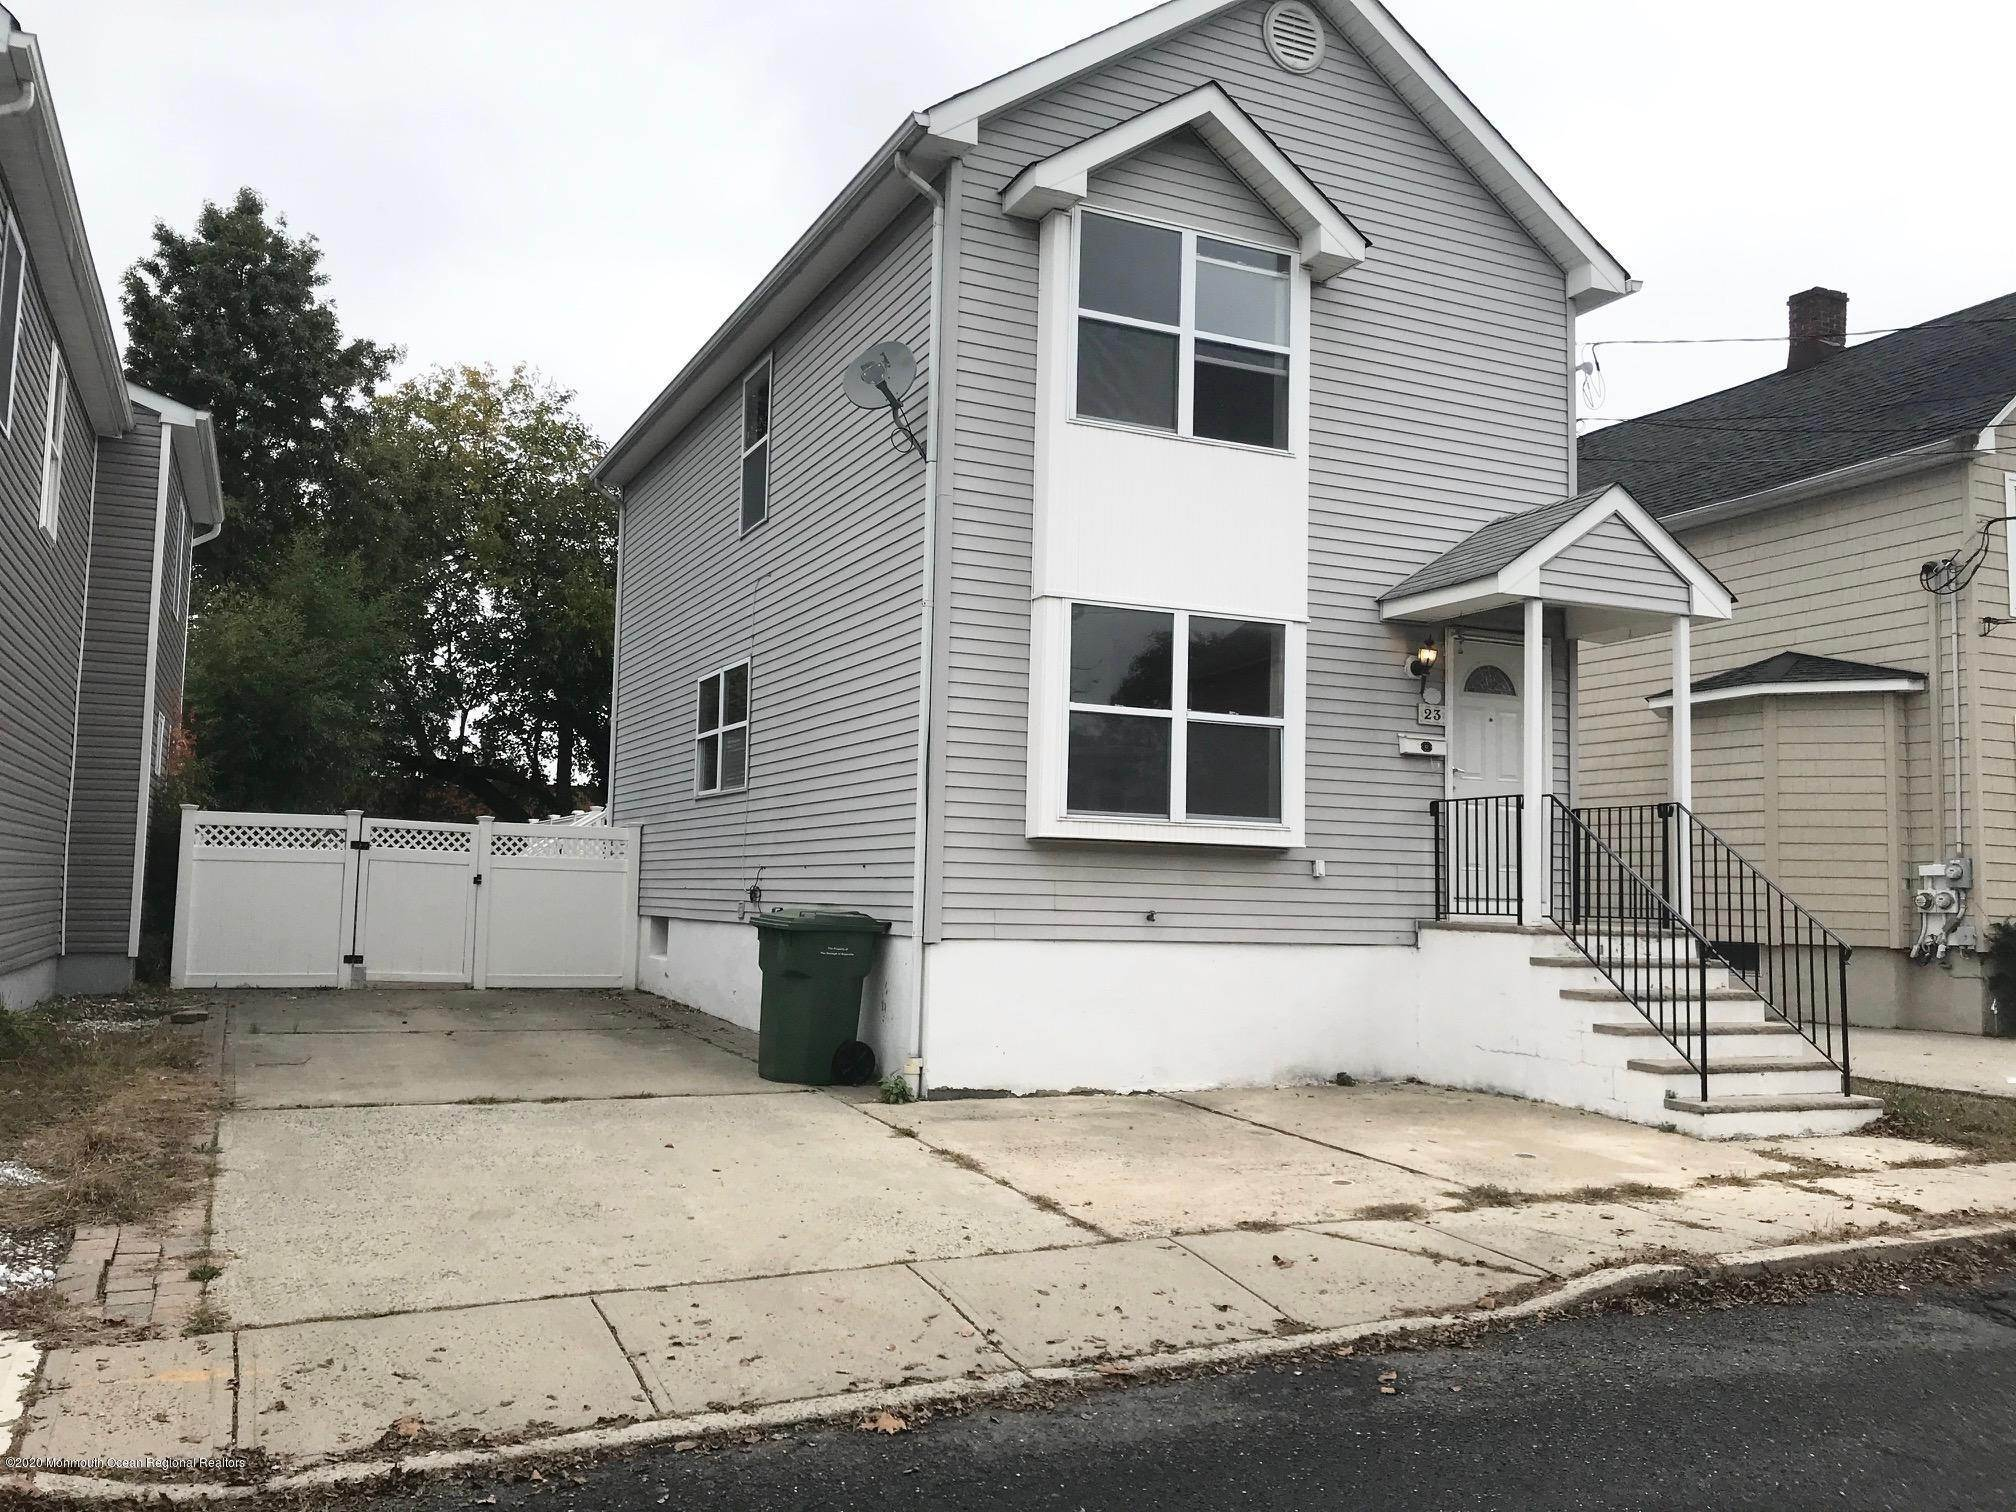 Single Family Homes for Sale at 23 Dolan Street Sayreville, New Jersey 08872 United States